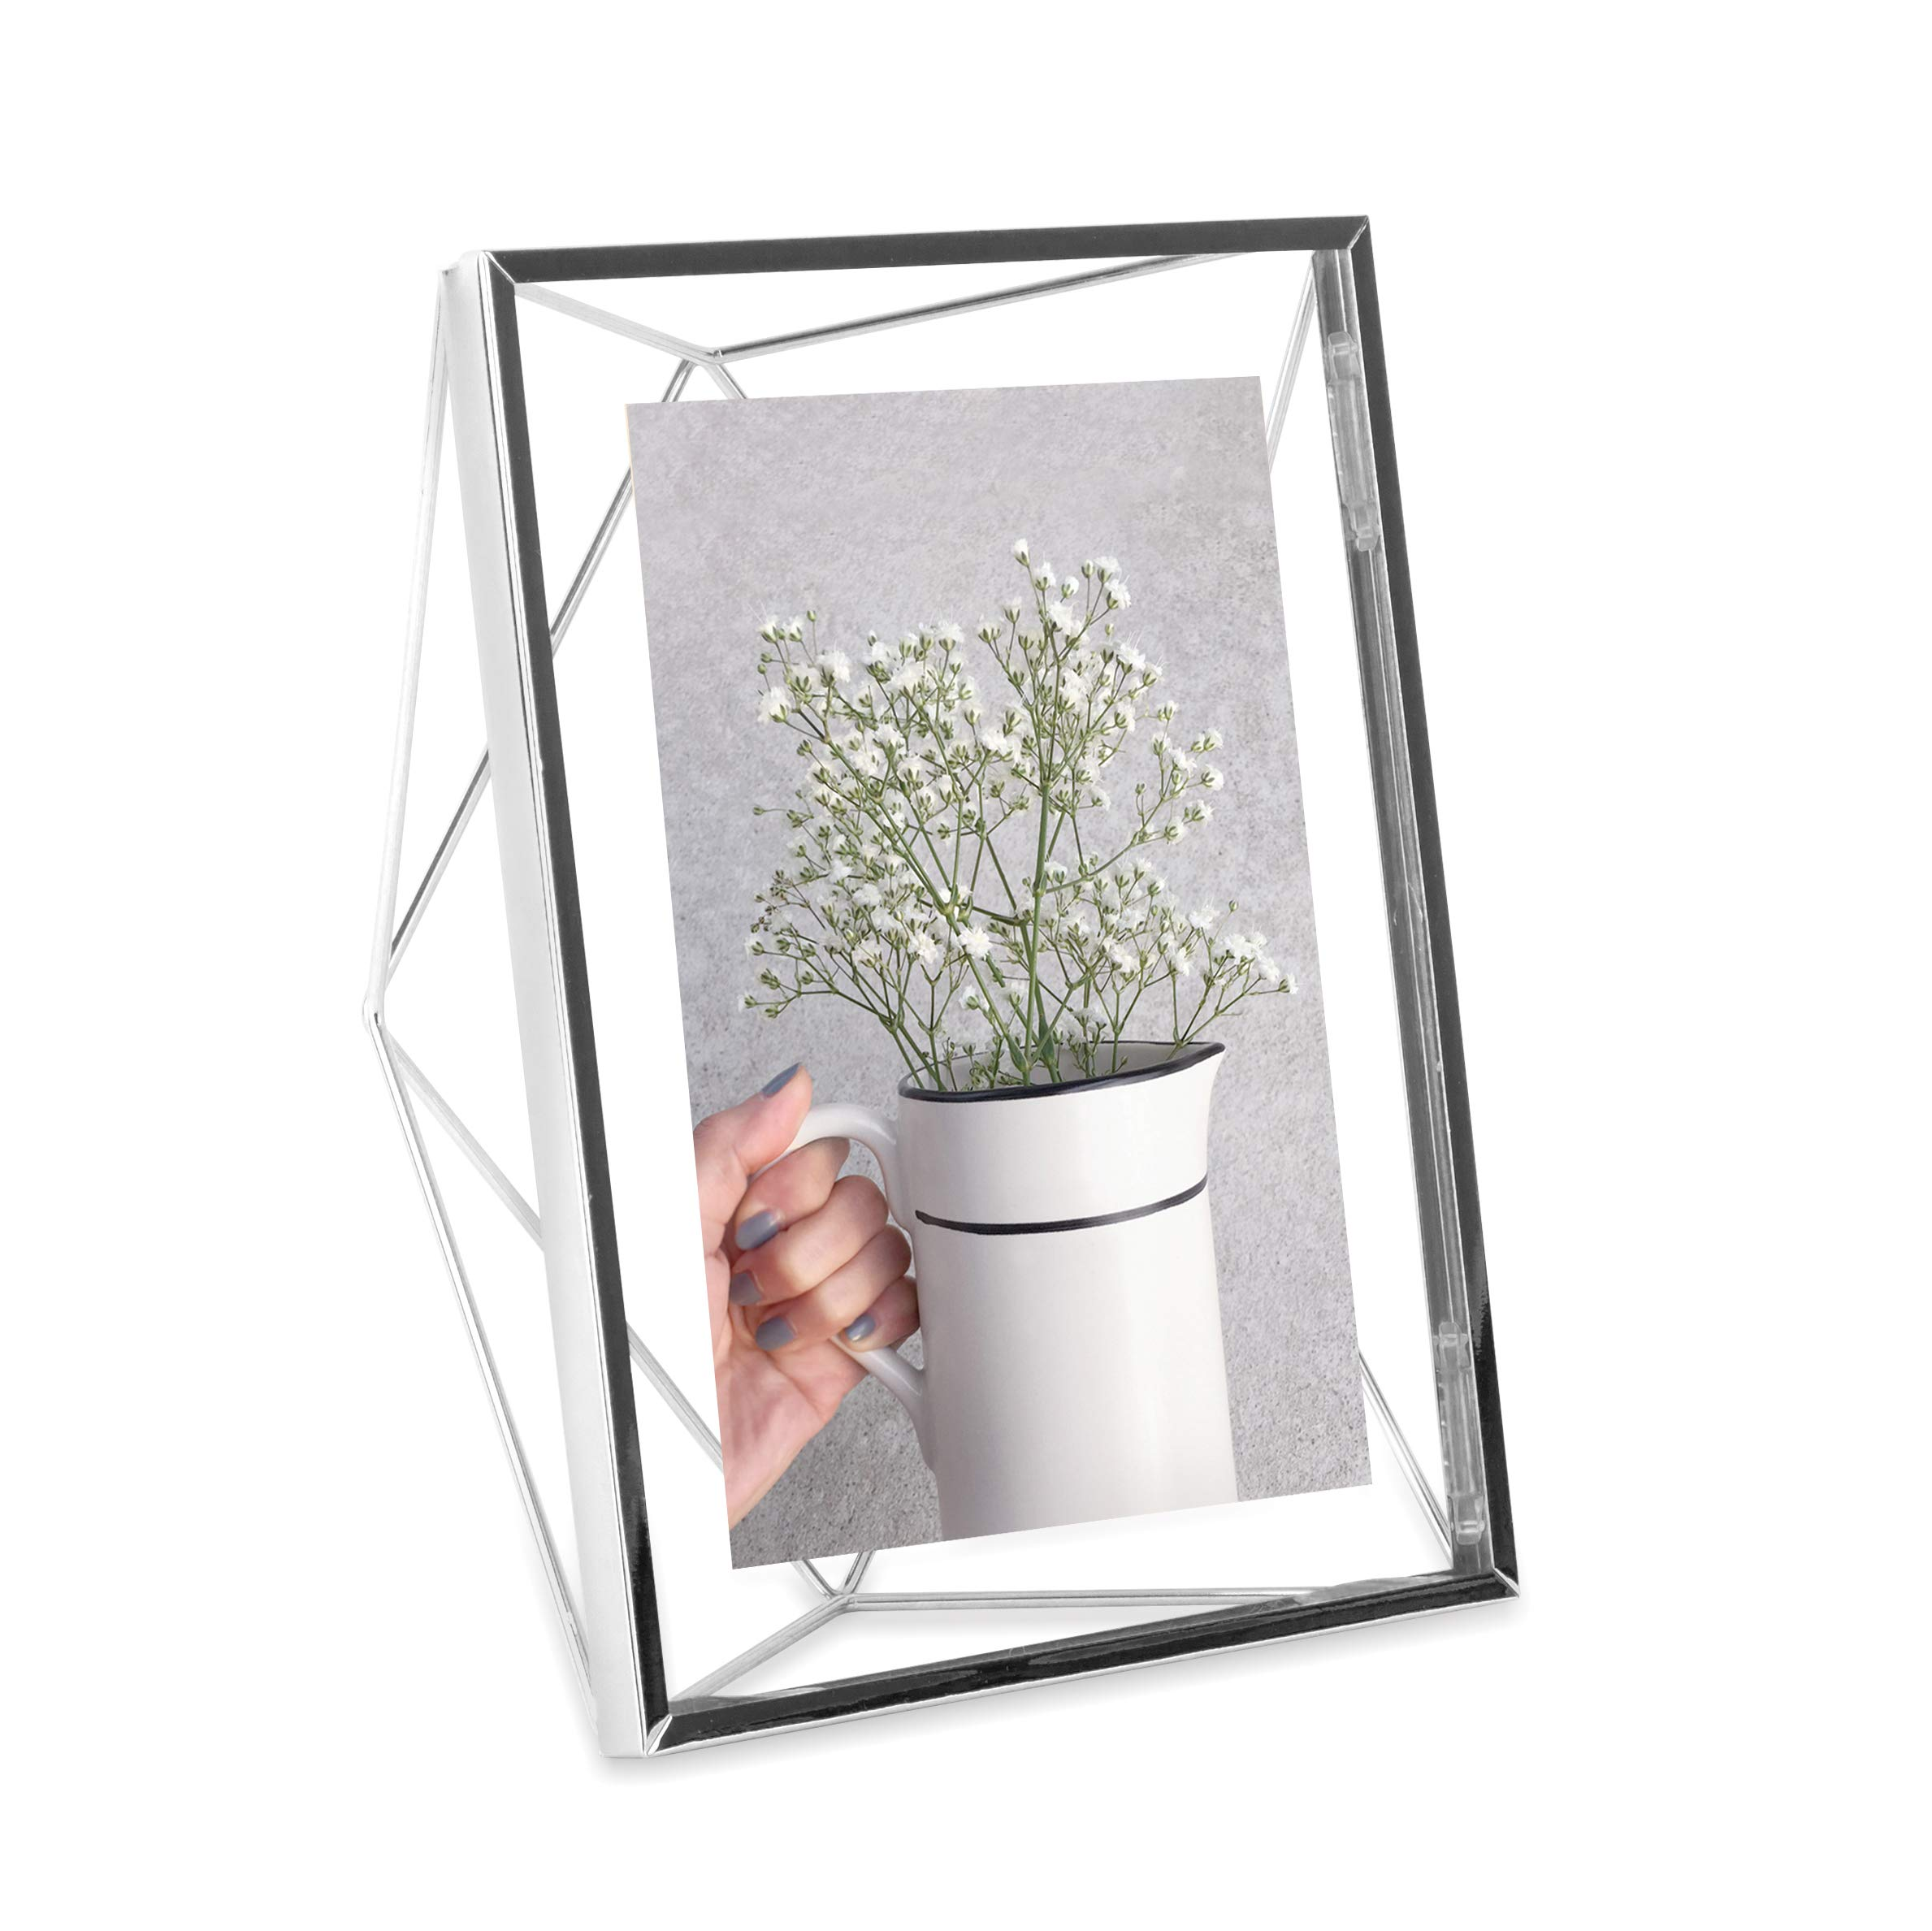 Umbra Prisma Picture Frame, 5x7 Photo Display for Desk or Wall, Chrome by Umbra